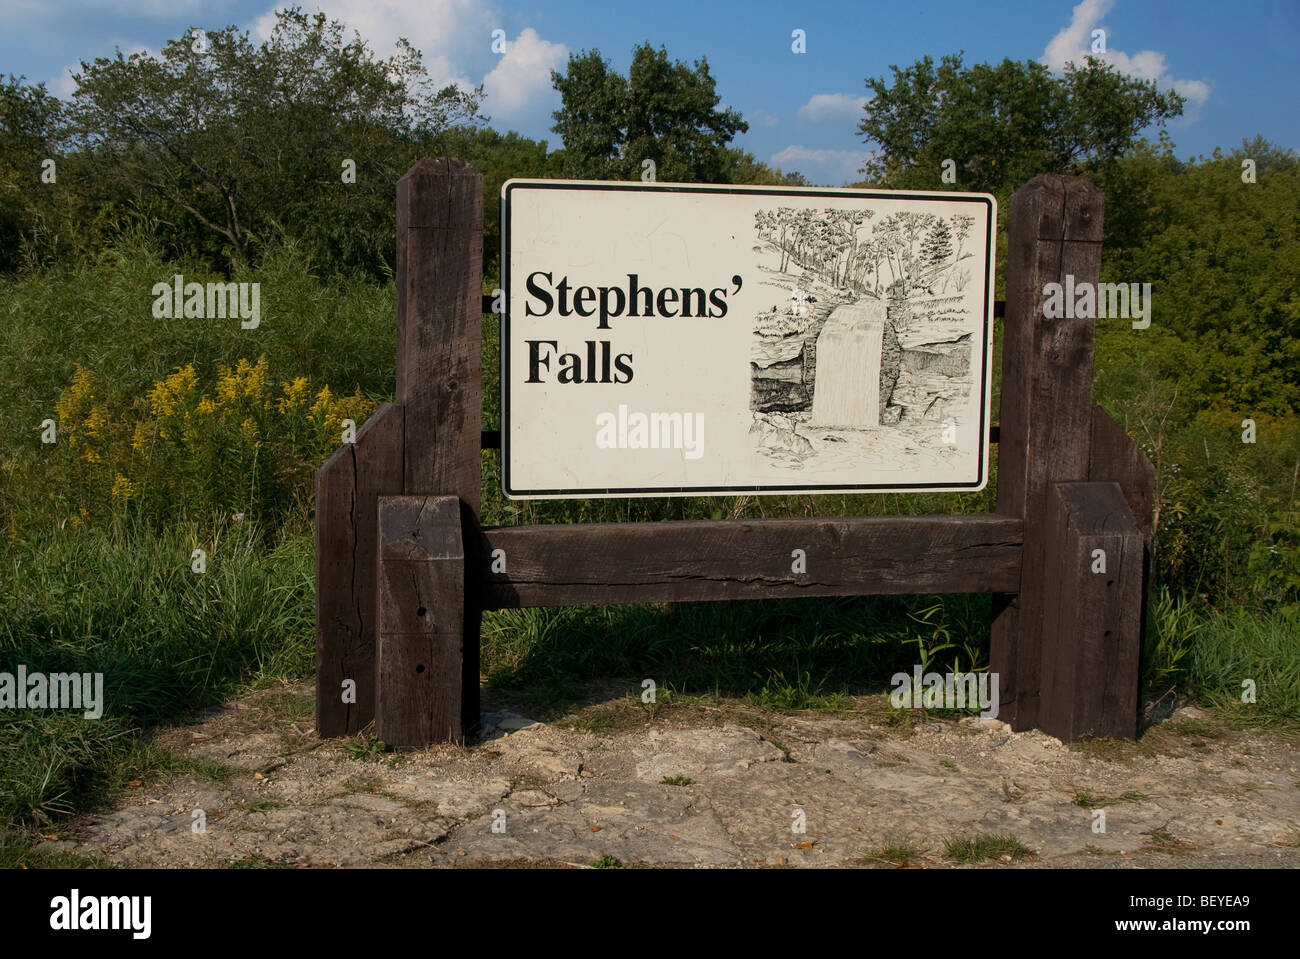 Sign for Stephens Falls in Governor Dodge State Park near Dodgeville, Wisconsin. - Stock Image